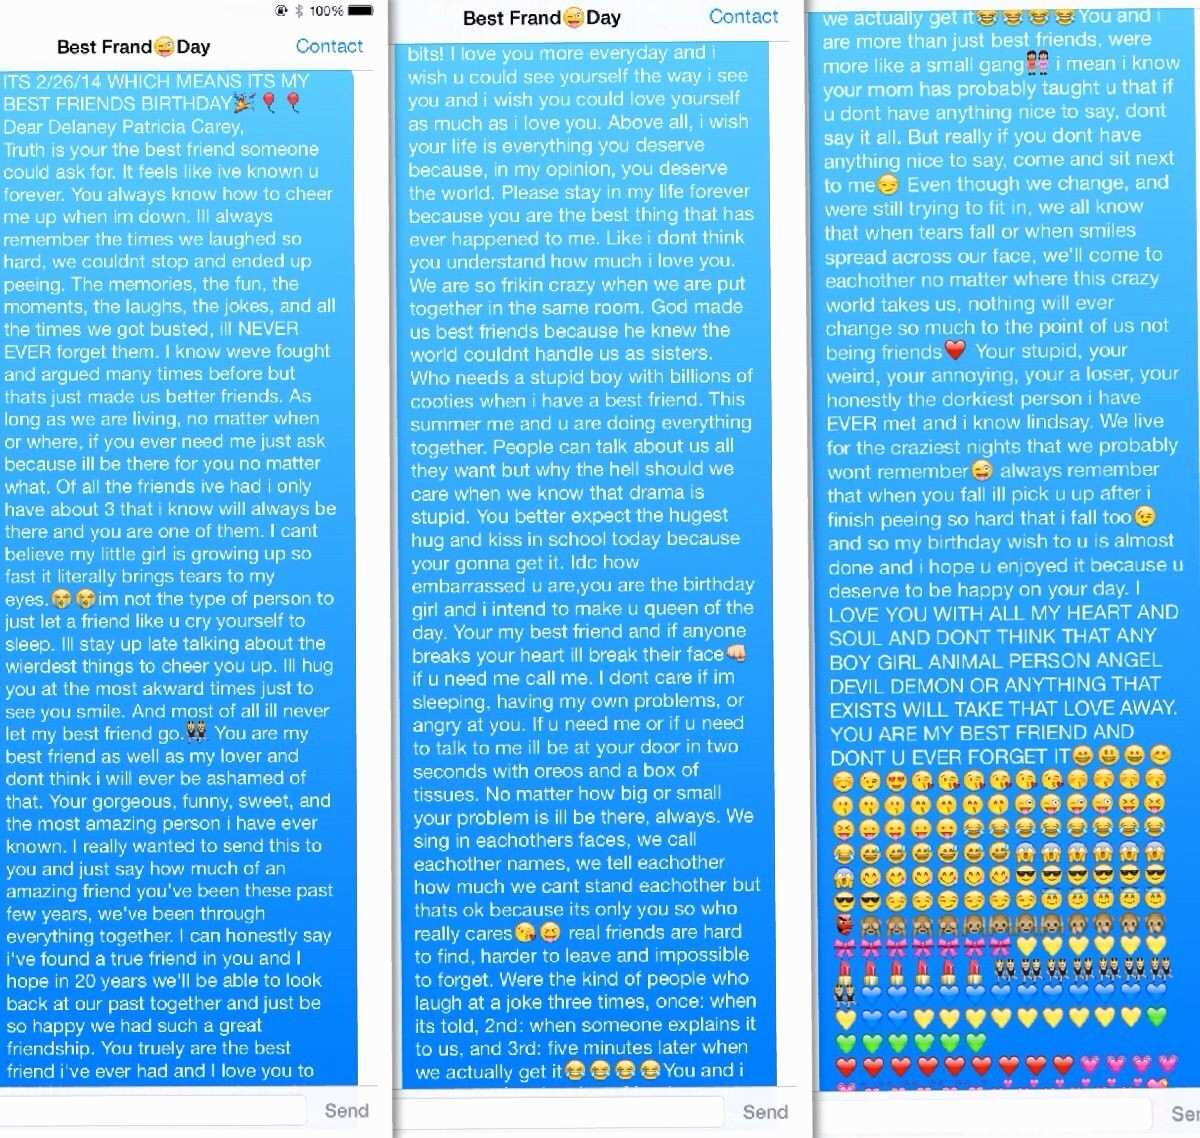 a good happy birthday text message ; happy-birthday-images-for-text-messages-inspirational-birthday-best-friend-quotes-best-birthday-wishes-quotes-for-old-of-happy-birthday-images-for-text-messages